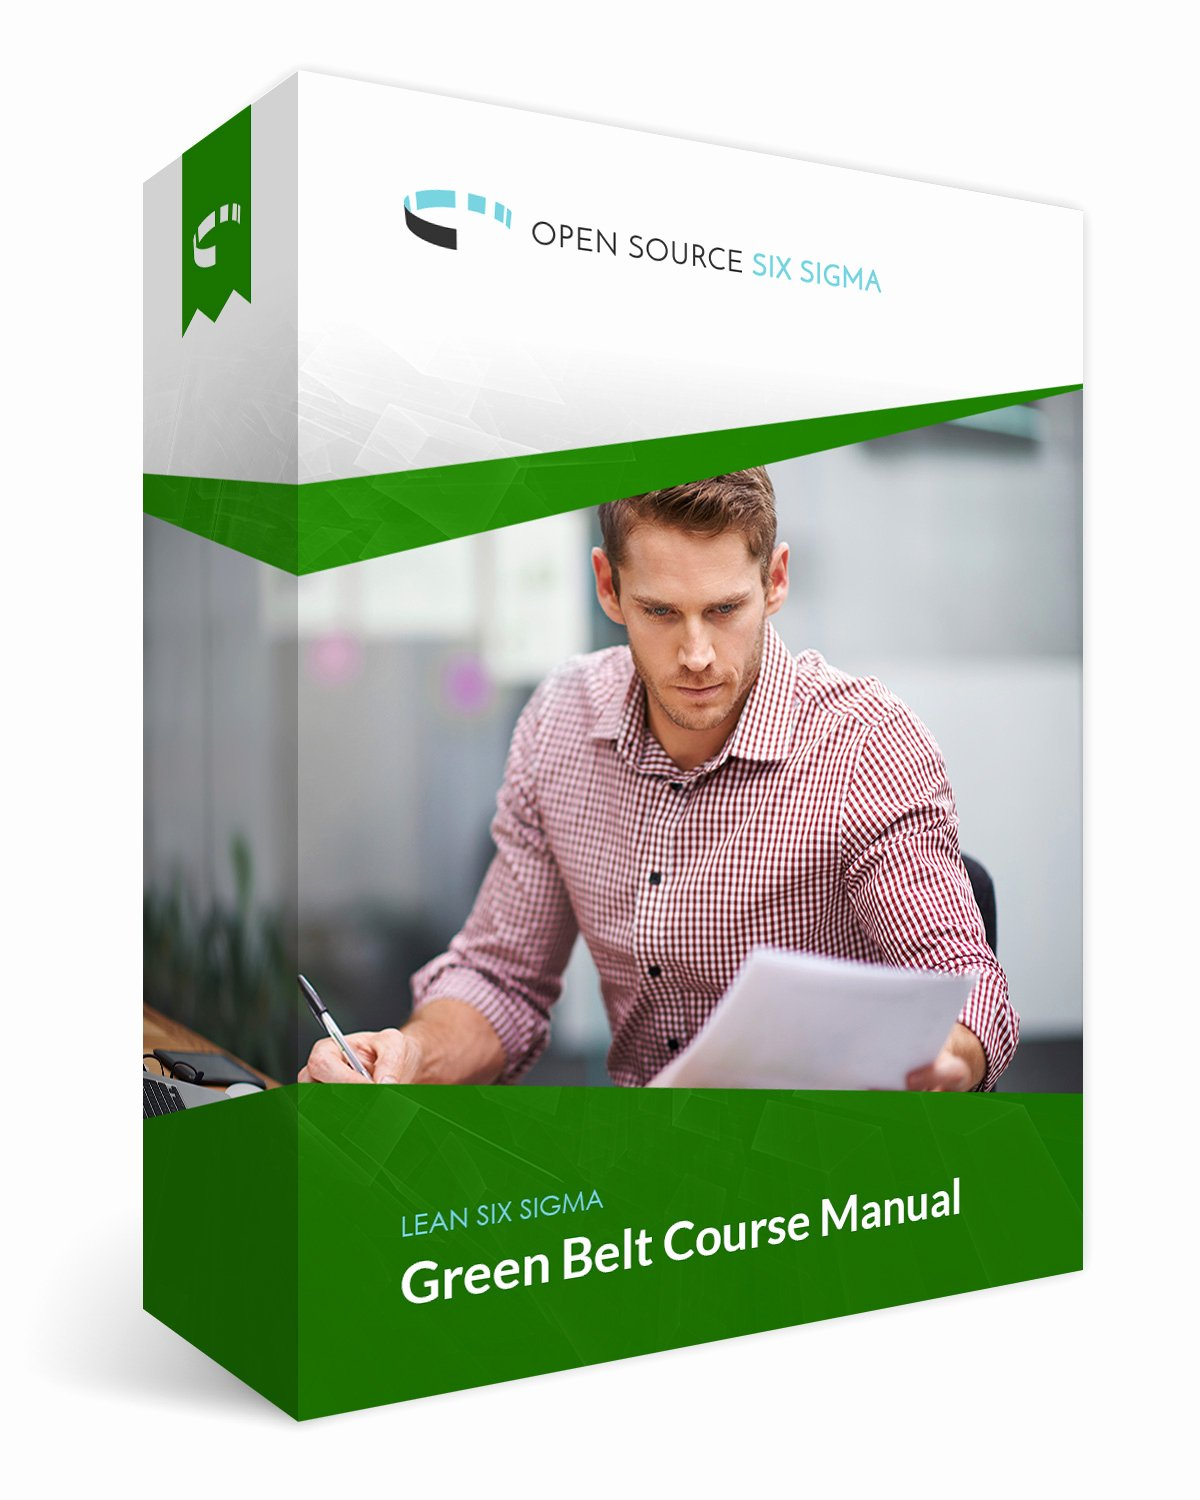 Six Sigma Green Belt Certificate Template Elegant Lean Six Sigma Training & Resources